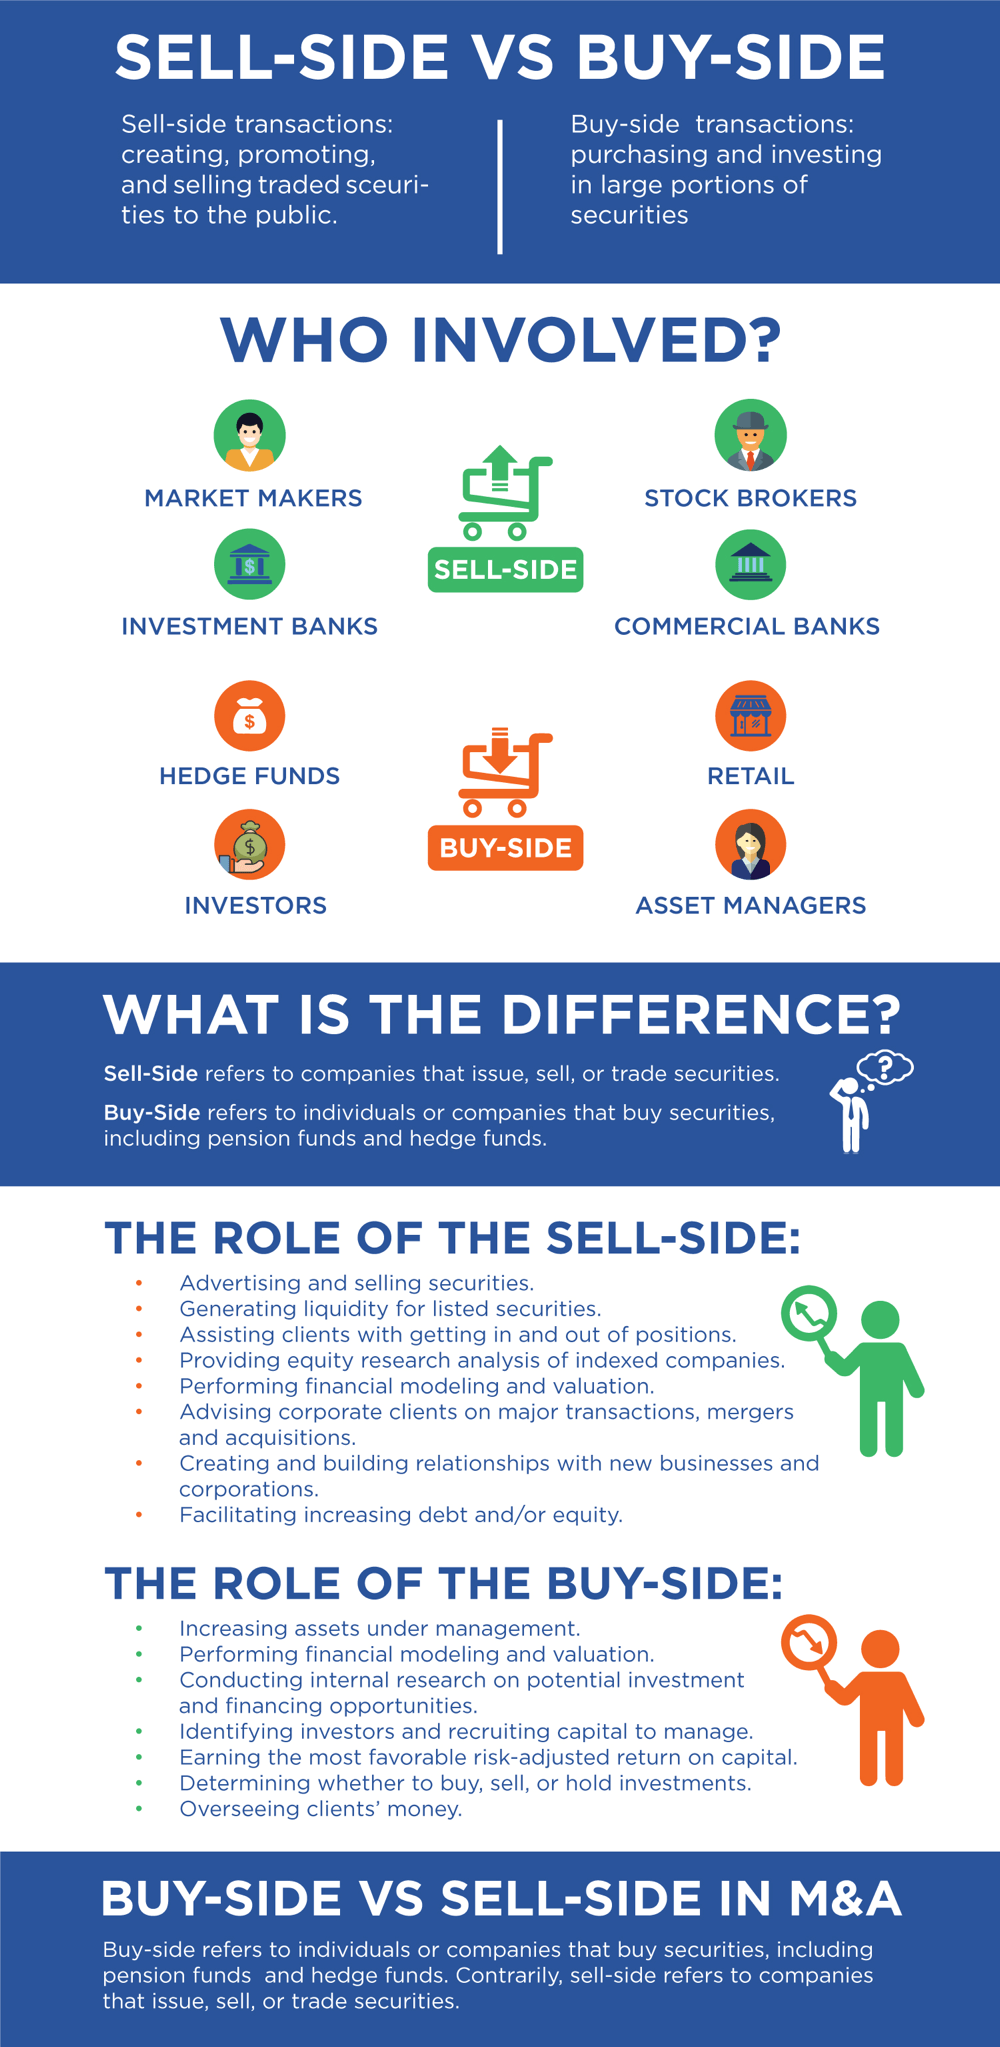 sell-side vs buy-side